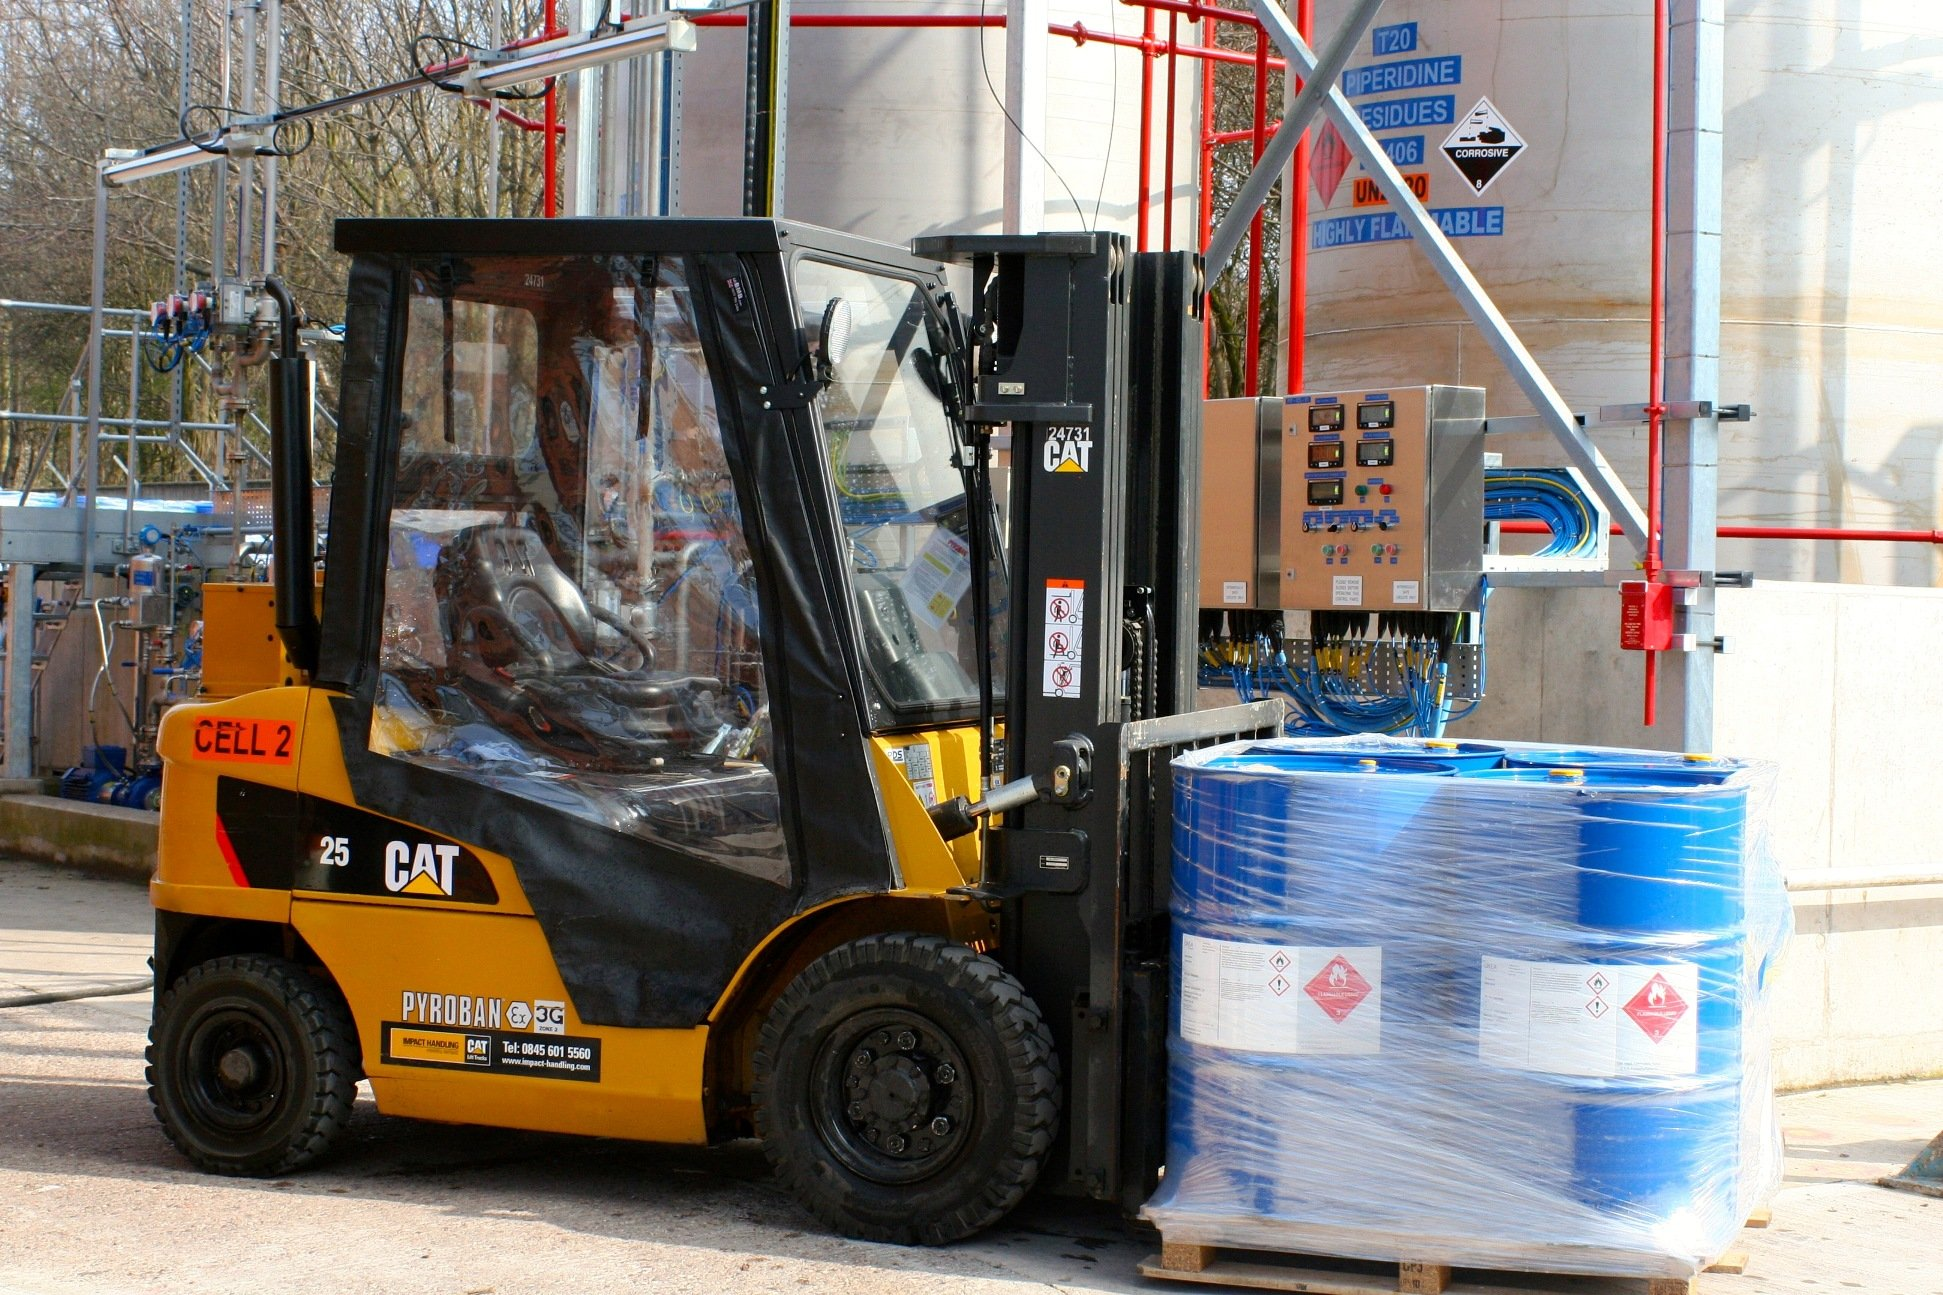 Forklift safety: Agency worker was run over by forklift truck